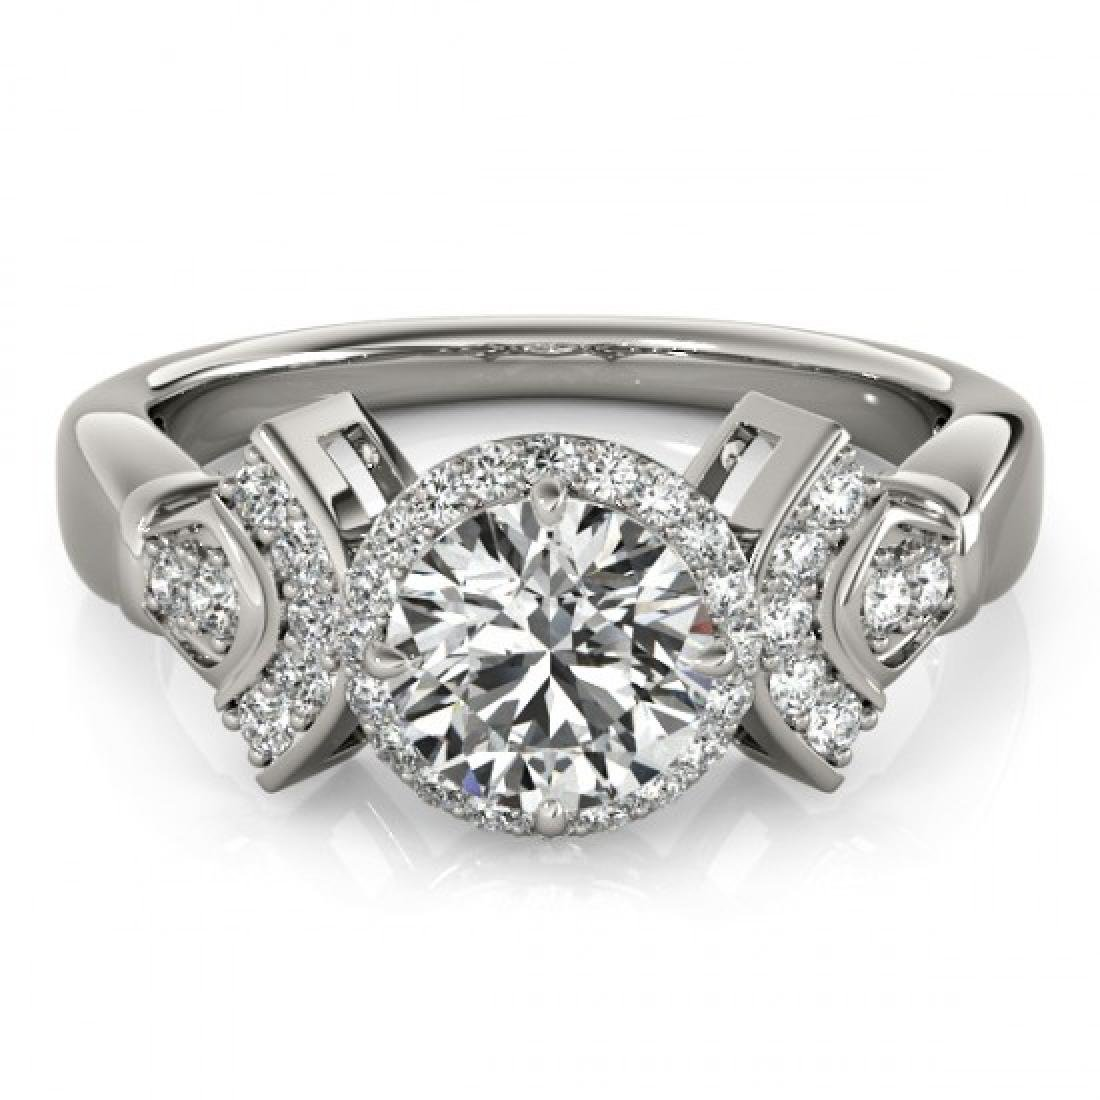 1.56 CTW Certified VS/SI Diamond Solitaire Halo Ring